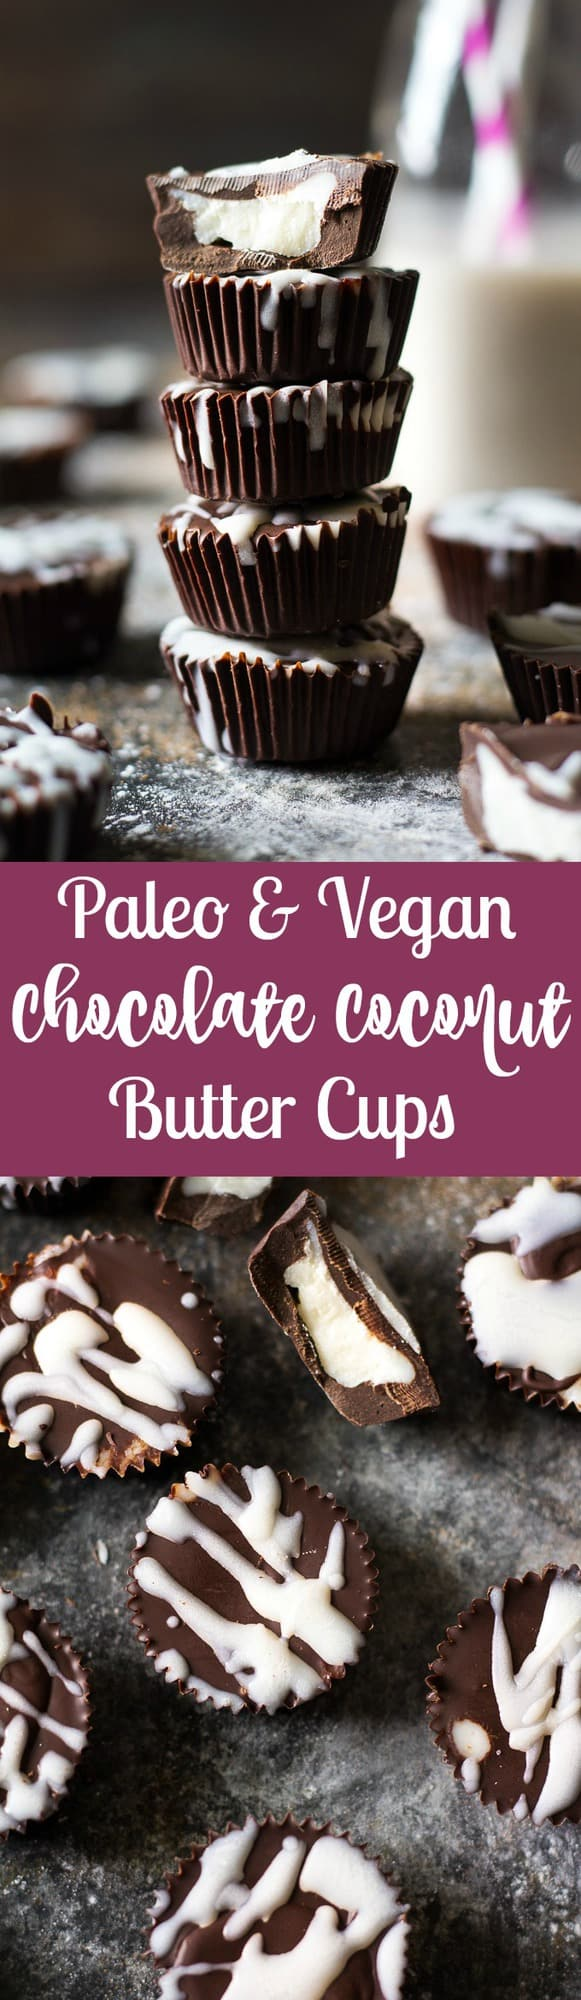 Rich, creamy and sweet Easy Chocolate Coconut Butter Cups that give you a healthy way to eat your chocolate candy!  They're Paleo, vegan, dairy free and refined sugar free.